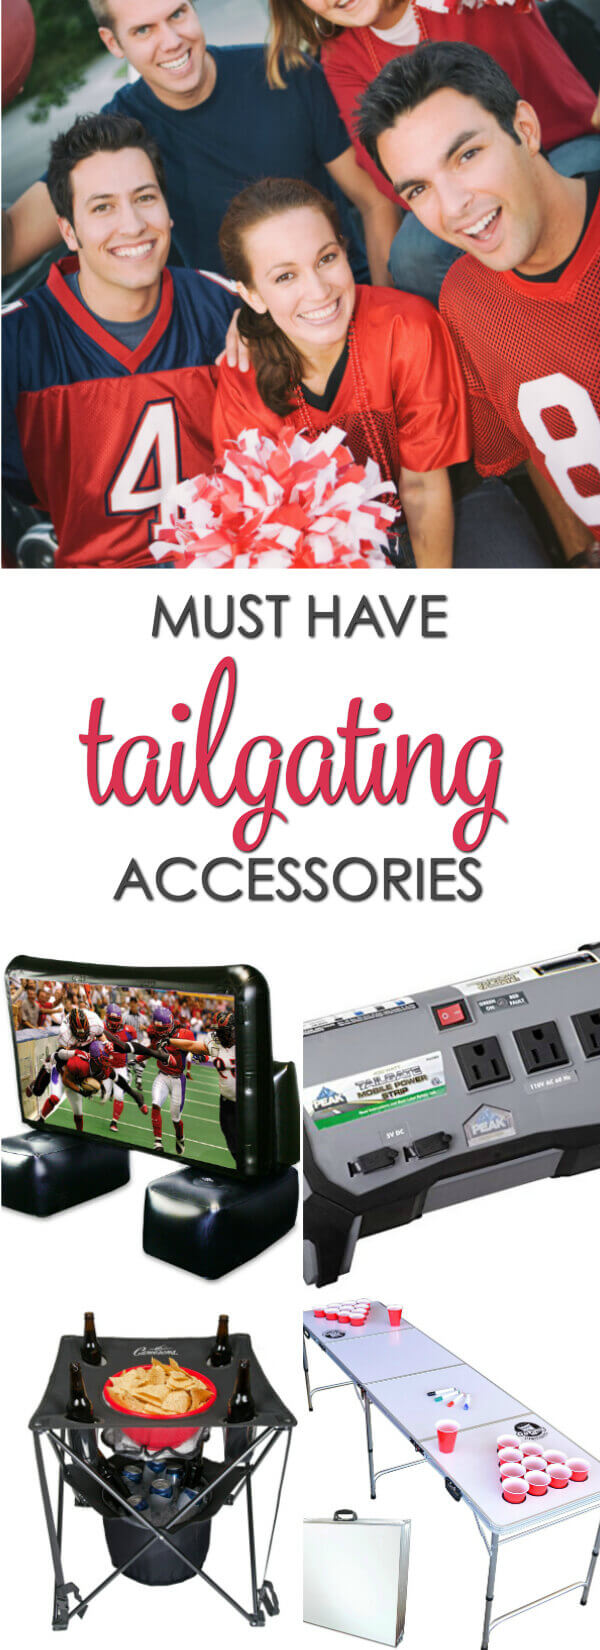 Must have tailgate party ideas to host an epic tailgating party